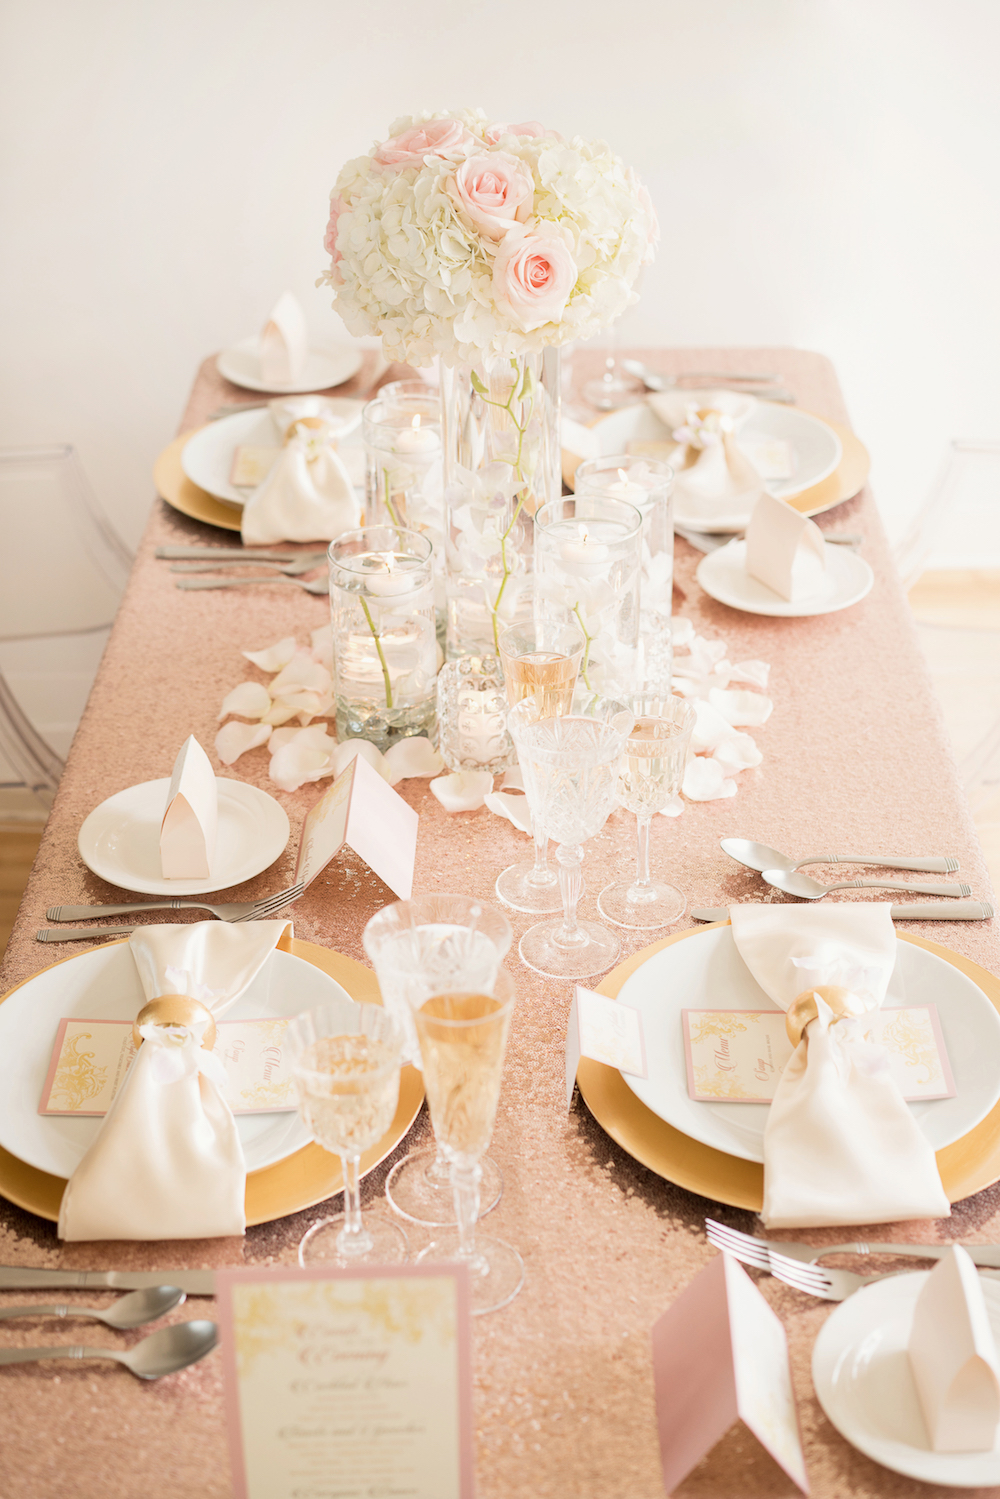 Gorgeous Sparkly Table Setting from a Romantic Wedding Inspired Styled Shoot & Romantic Wedding Inspiration with Blush Sequins + a Dramatic Orchid ...